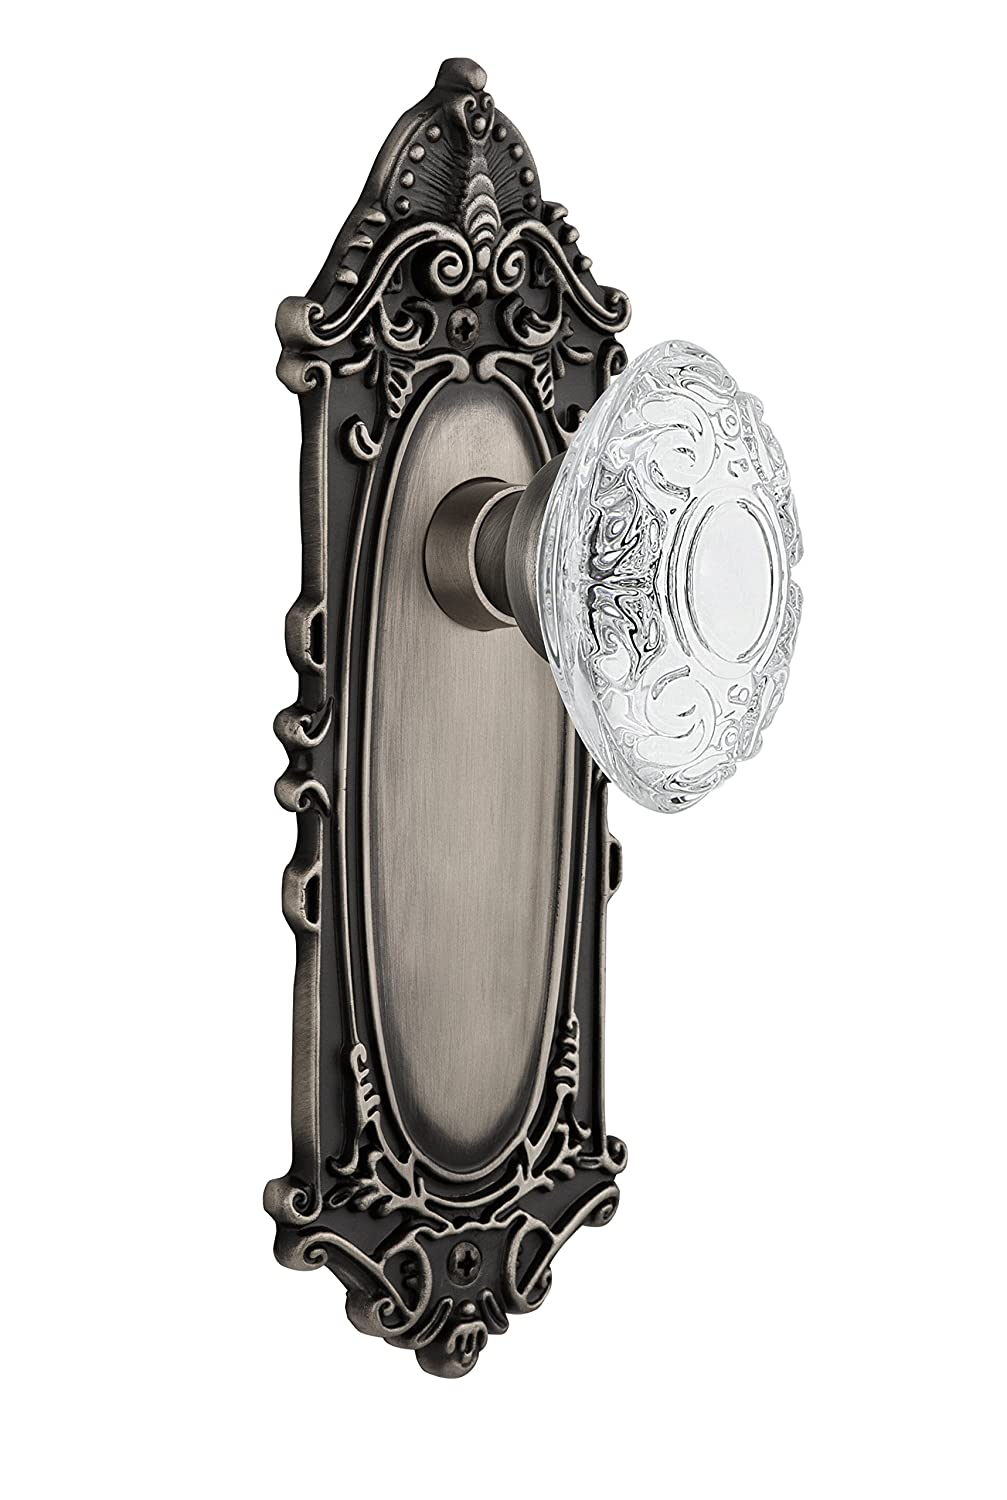 Nostalgic Warehouse 754044 Plate with Crystal Victorian Double Dummy Door Knob Antique Brass Surface Mounted